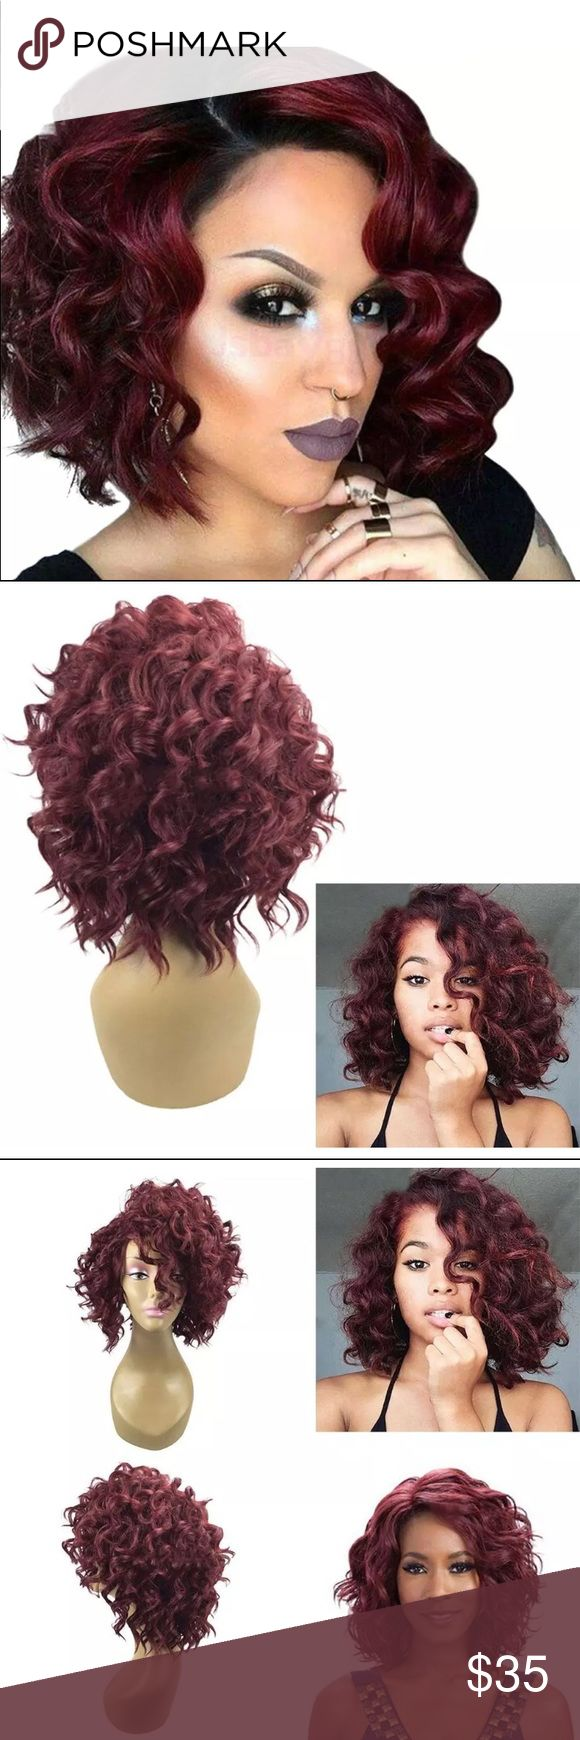 """14"""" Ombré Black/Reddish Wine Curly Bob Wig Curly Shoulder length Ombré Bob Length: Approximately 14"""" Color: Ombré Black to Reddish wine  Cap size is average and is ADJUSTABLE  Material: Shiny Heat Resistant High Temperature Synthetic Fiber material is very similar to human hair with it's appearance, color and feel  It can be straightened and curled at lower temperatures (150 degrees Celsius) It is soft, silky and looks and feels just like your real hair 🛑 NOT recommend for dying and…"""